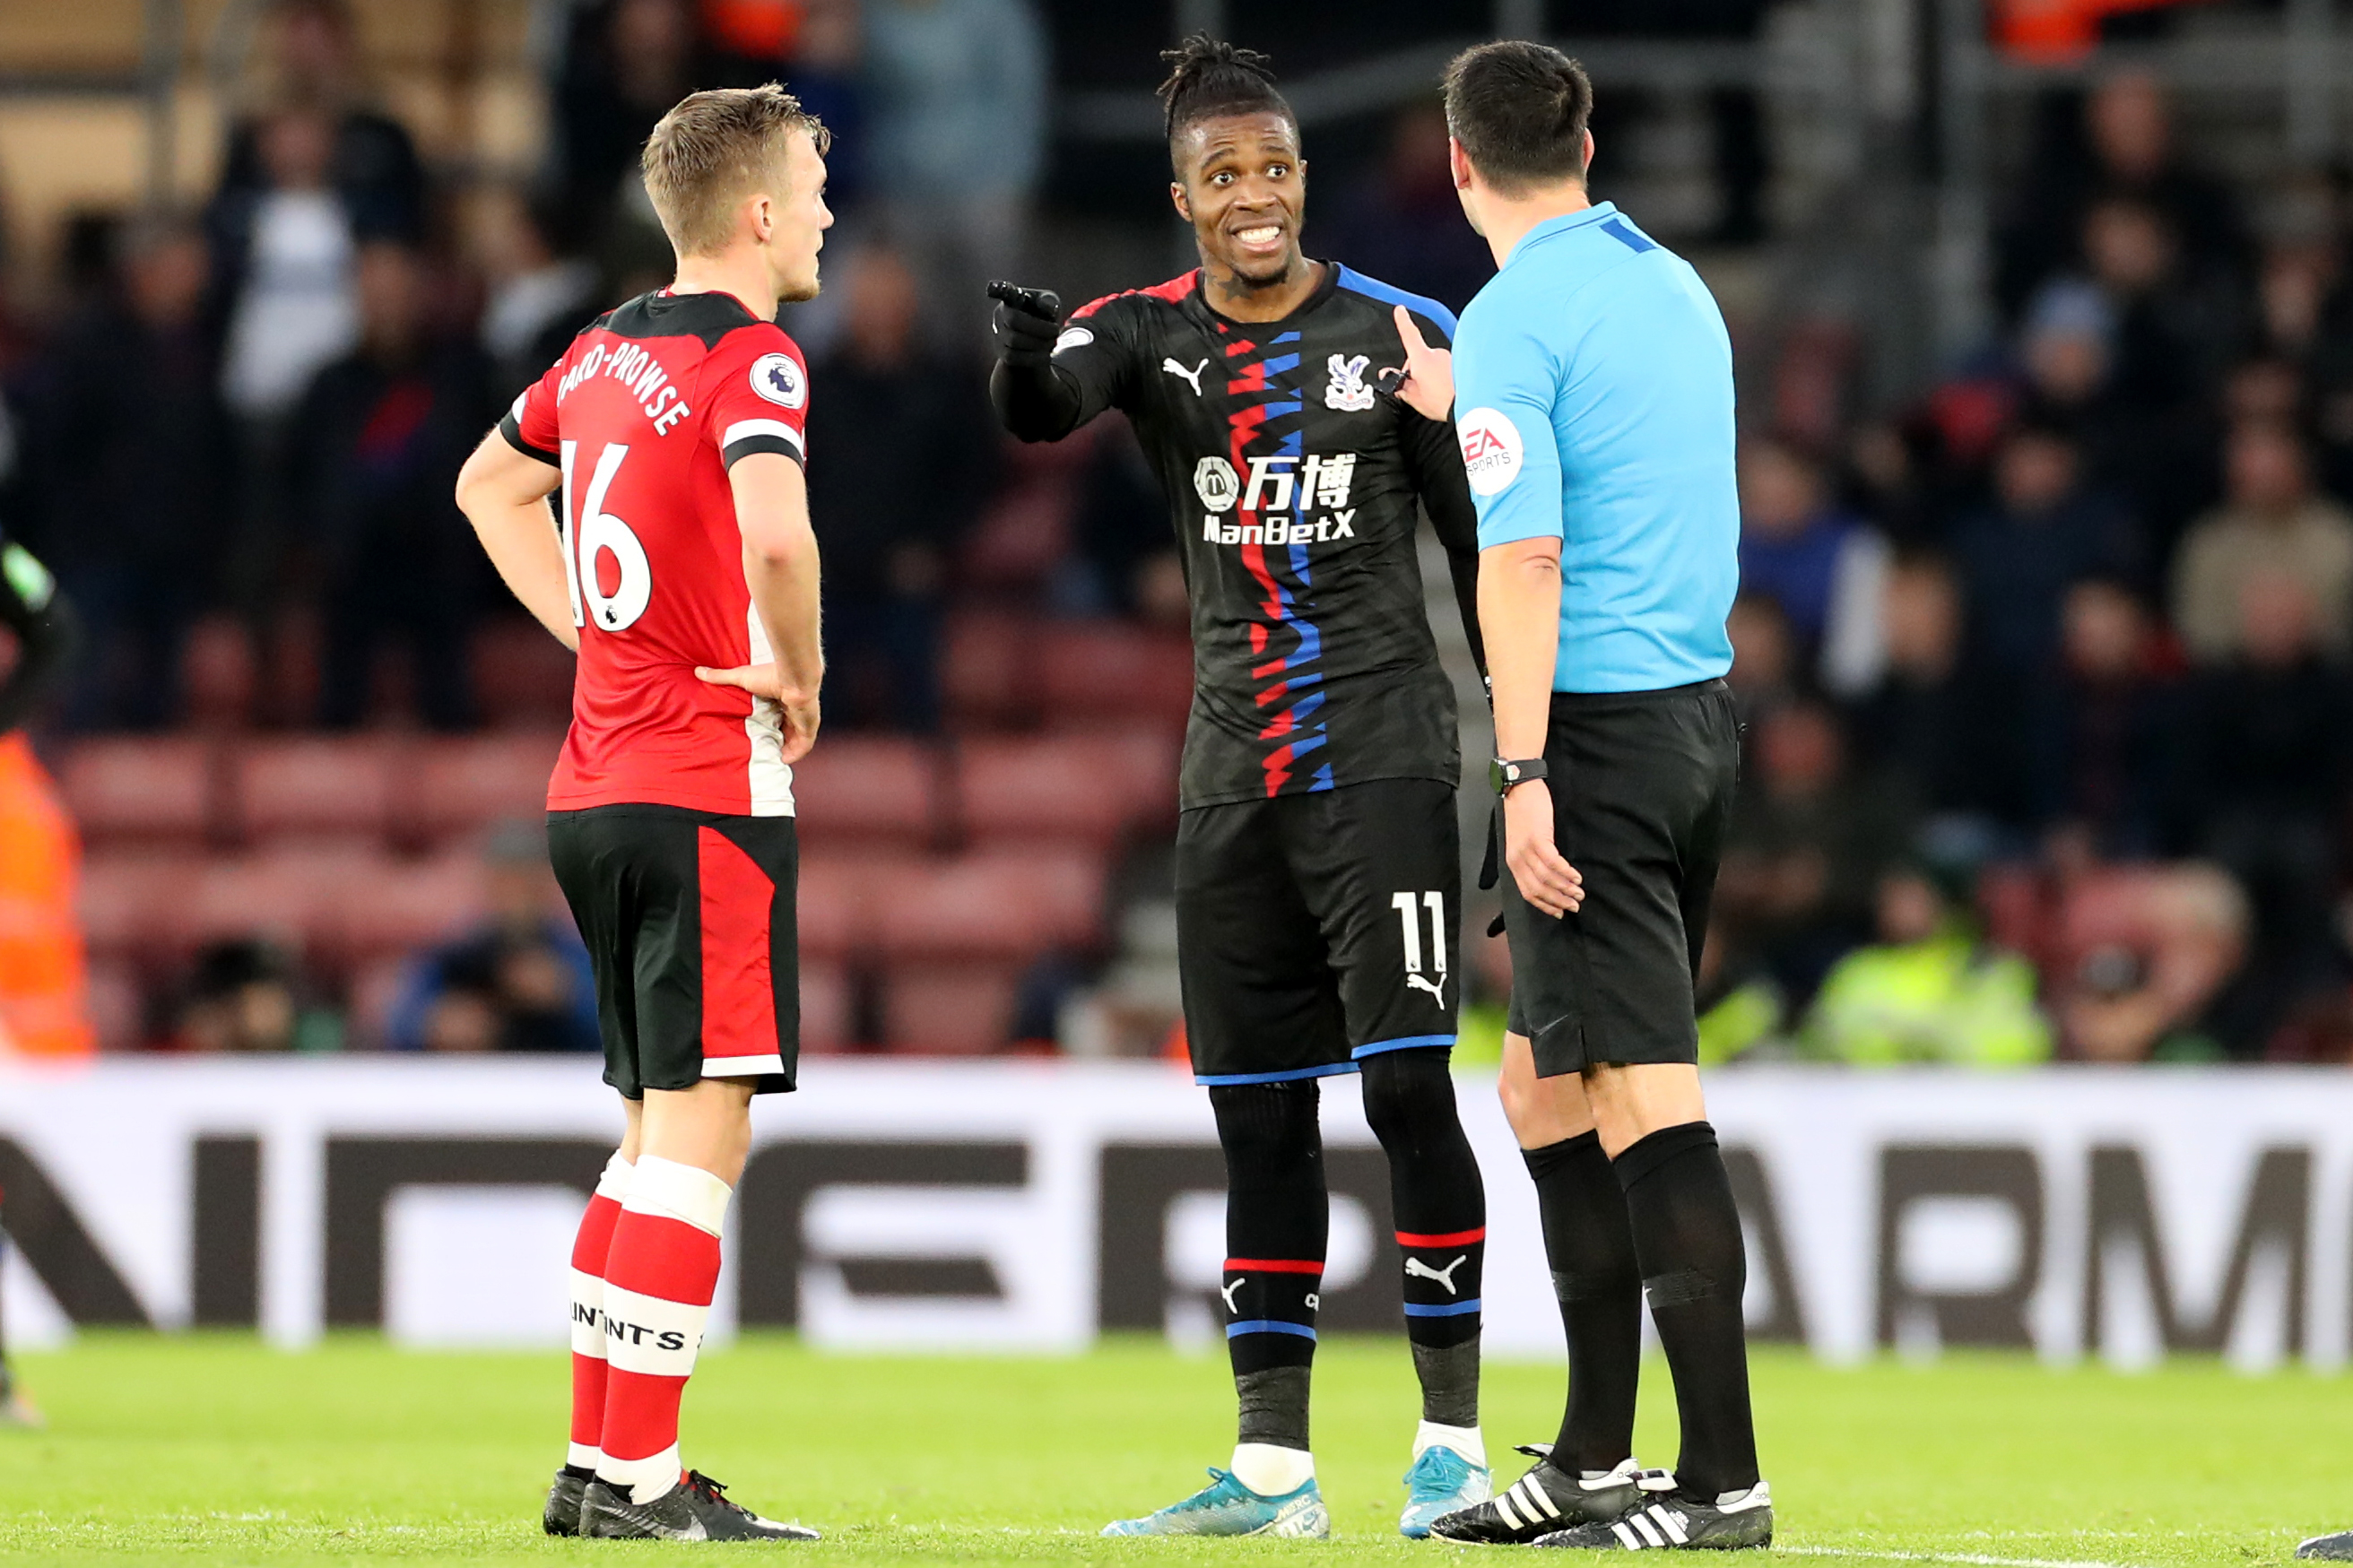 Southampton FC v Crystal Palace - Premier League, preview, team news, line up, injury update, how to watch on TV, where to stream online, kick-off time